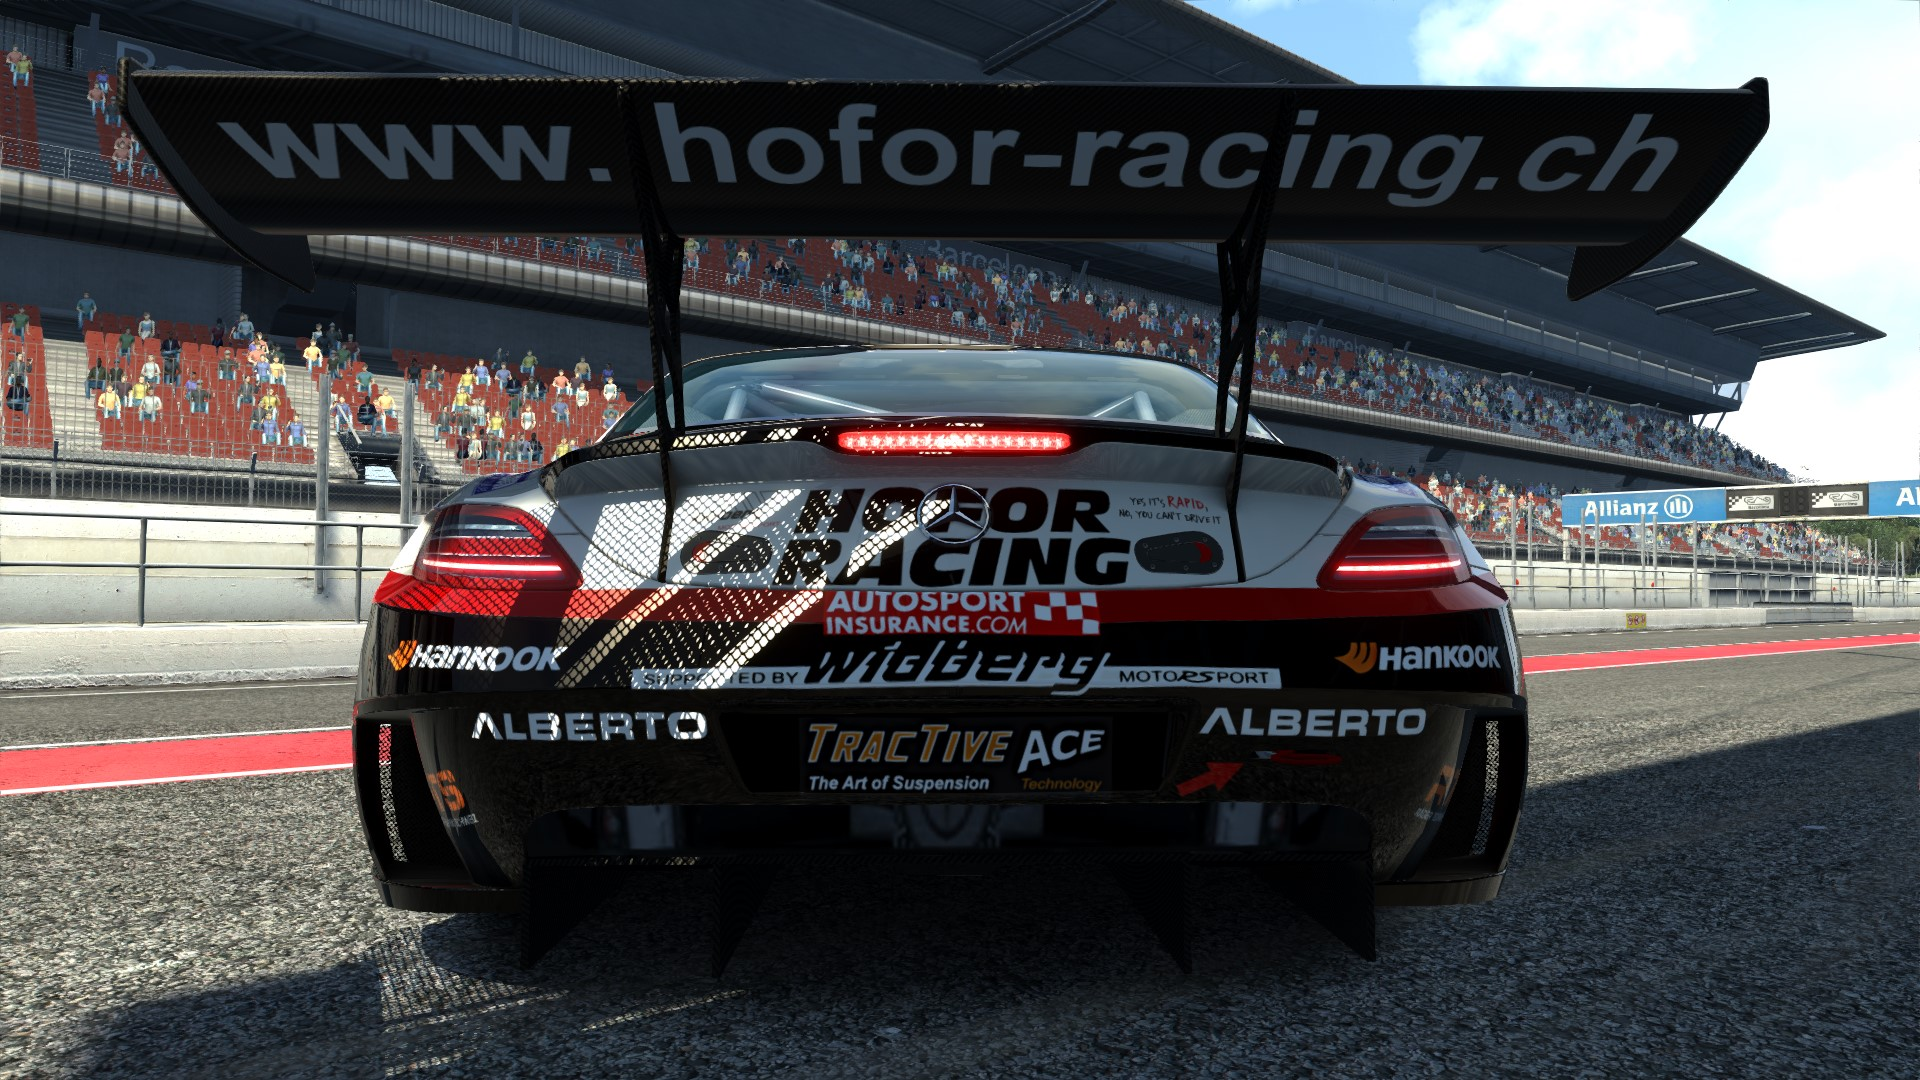 Screenshot_mercedes_sls_gt3_ks_barcelona_11-2-116-1-9-2.jpg